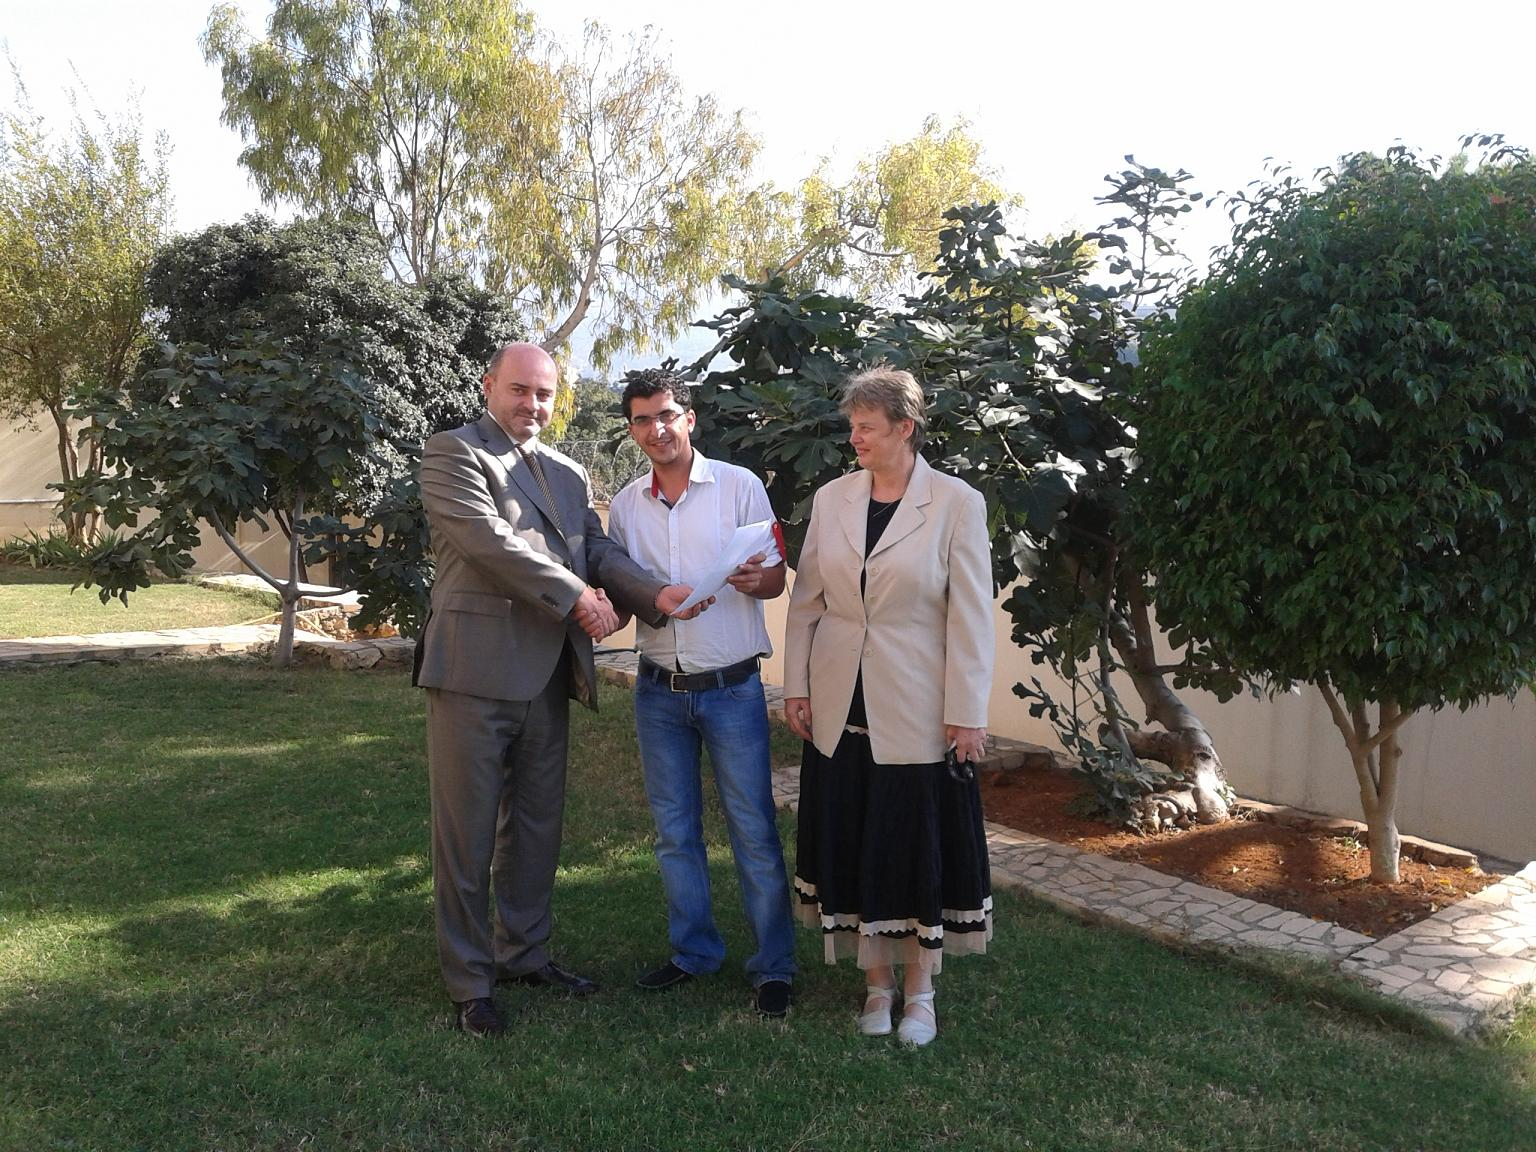 Ambassador Cumba and 1st Secretary Ivana Zuntova giving the Czech contribution to the Executive of Al Mishaal Sporting Club MVDr. Ali El Romeh (Beirut, 19.10.2012).